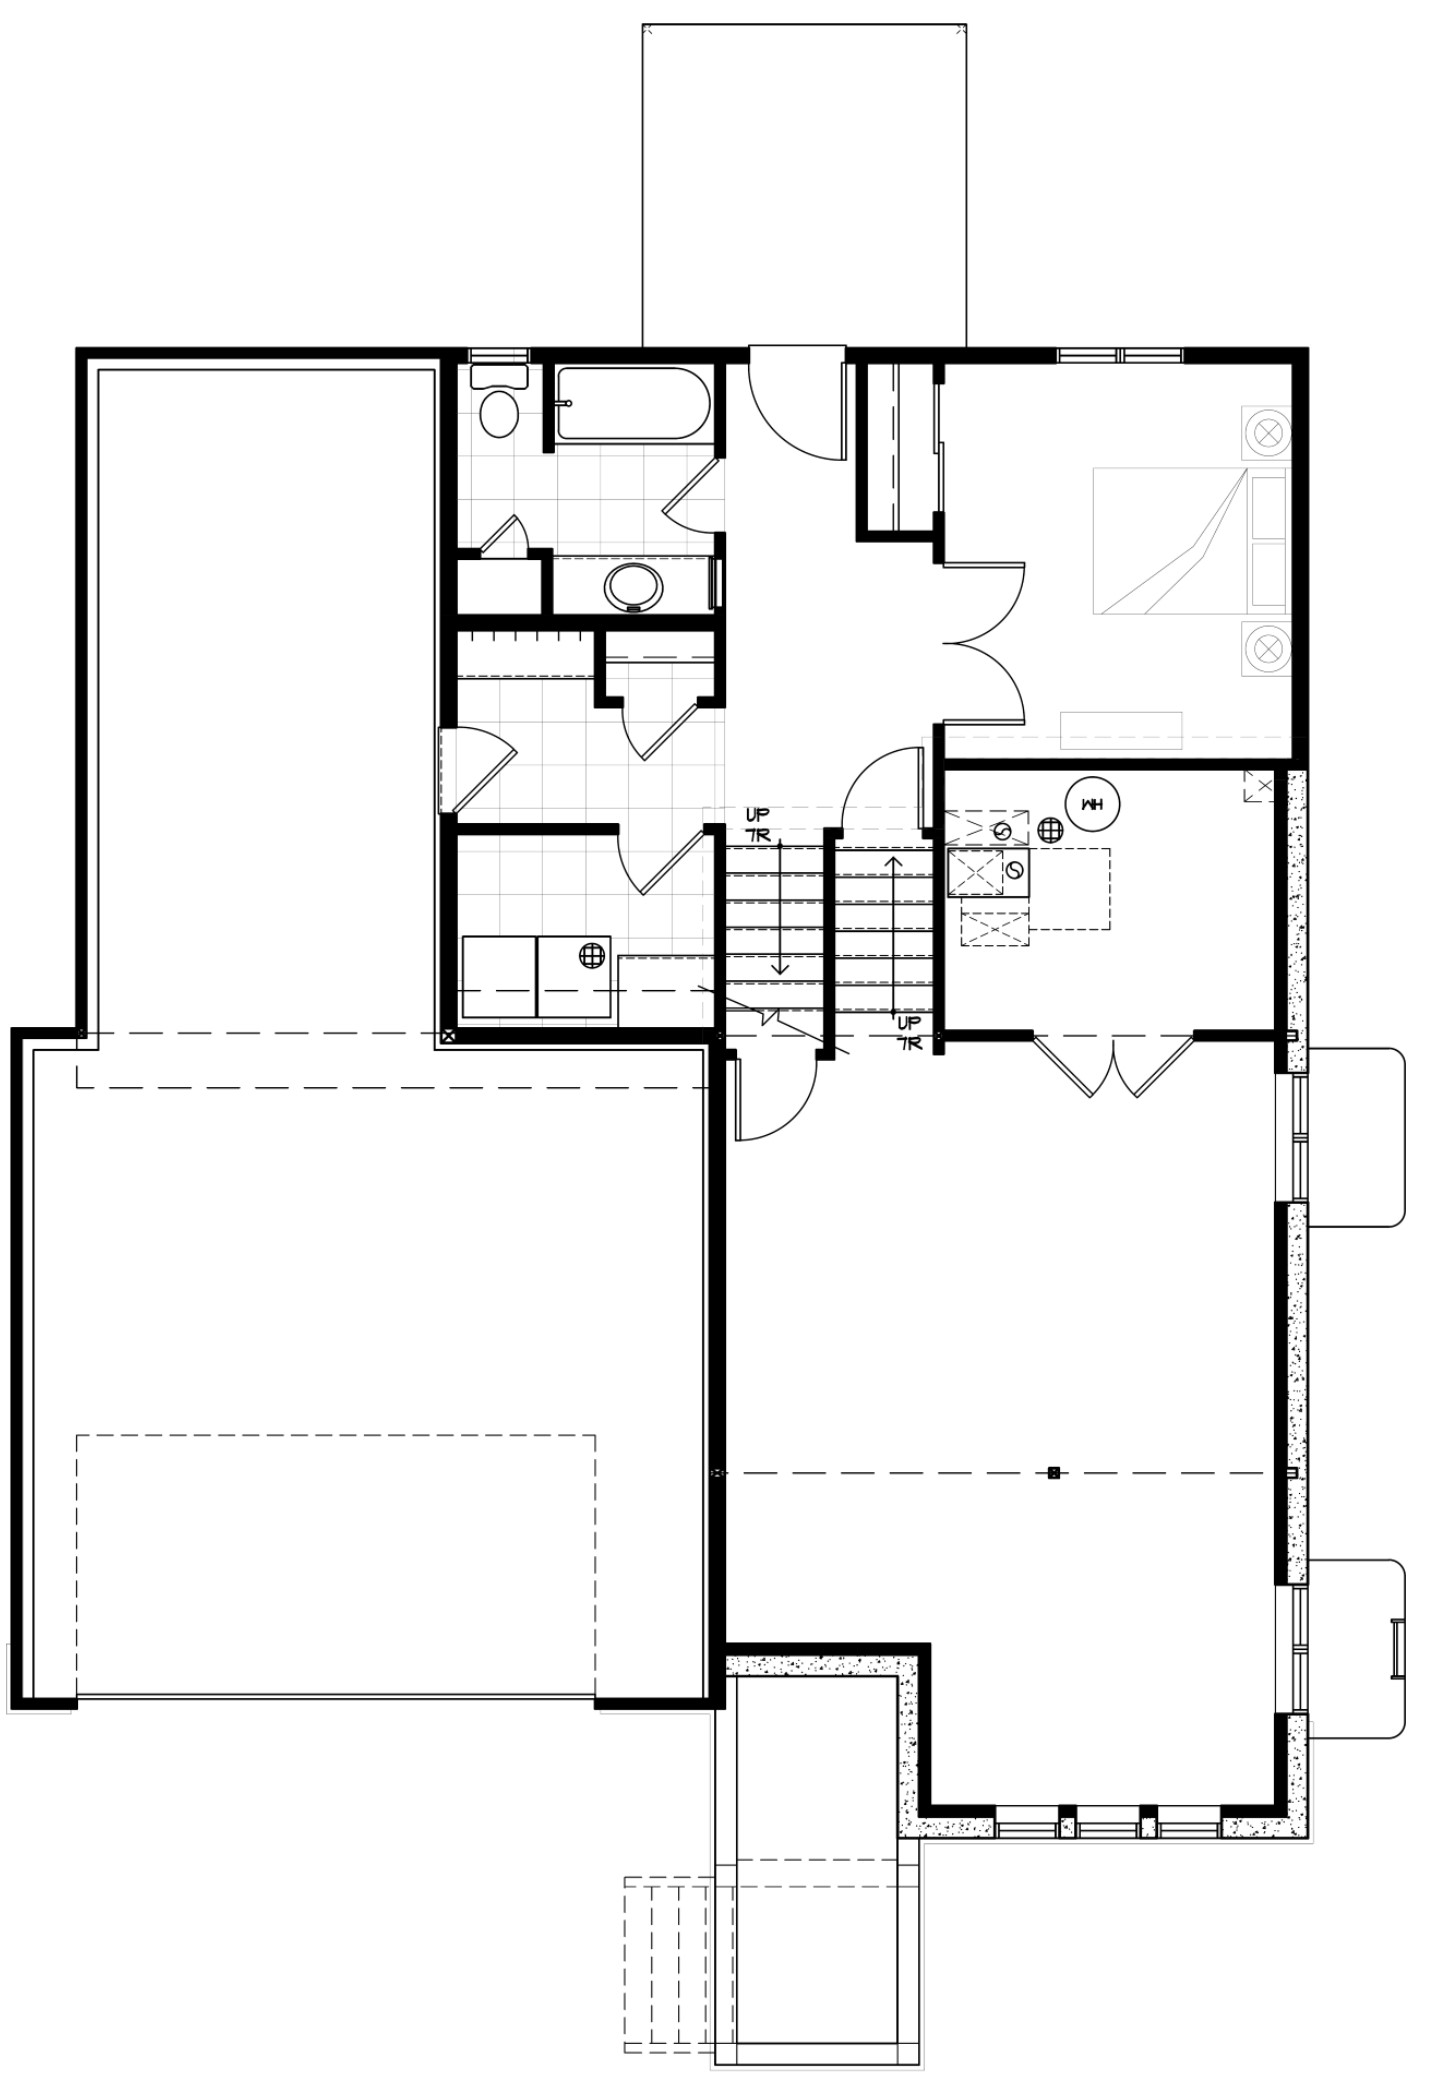 03-keystone-milliken-lower_20level_20floor_20plan-new_20home